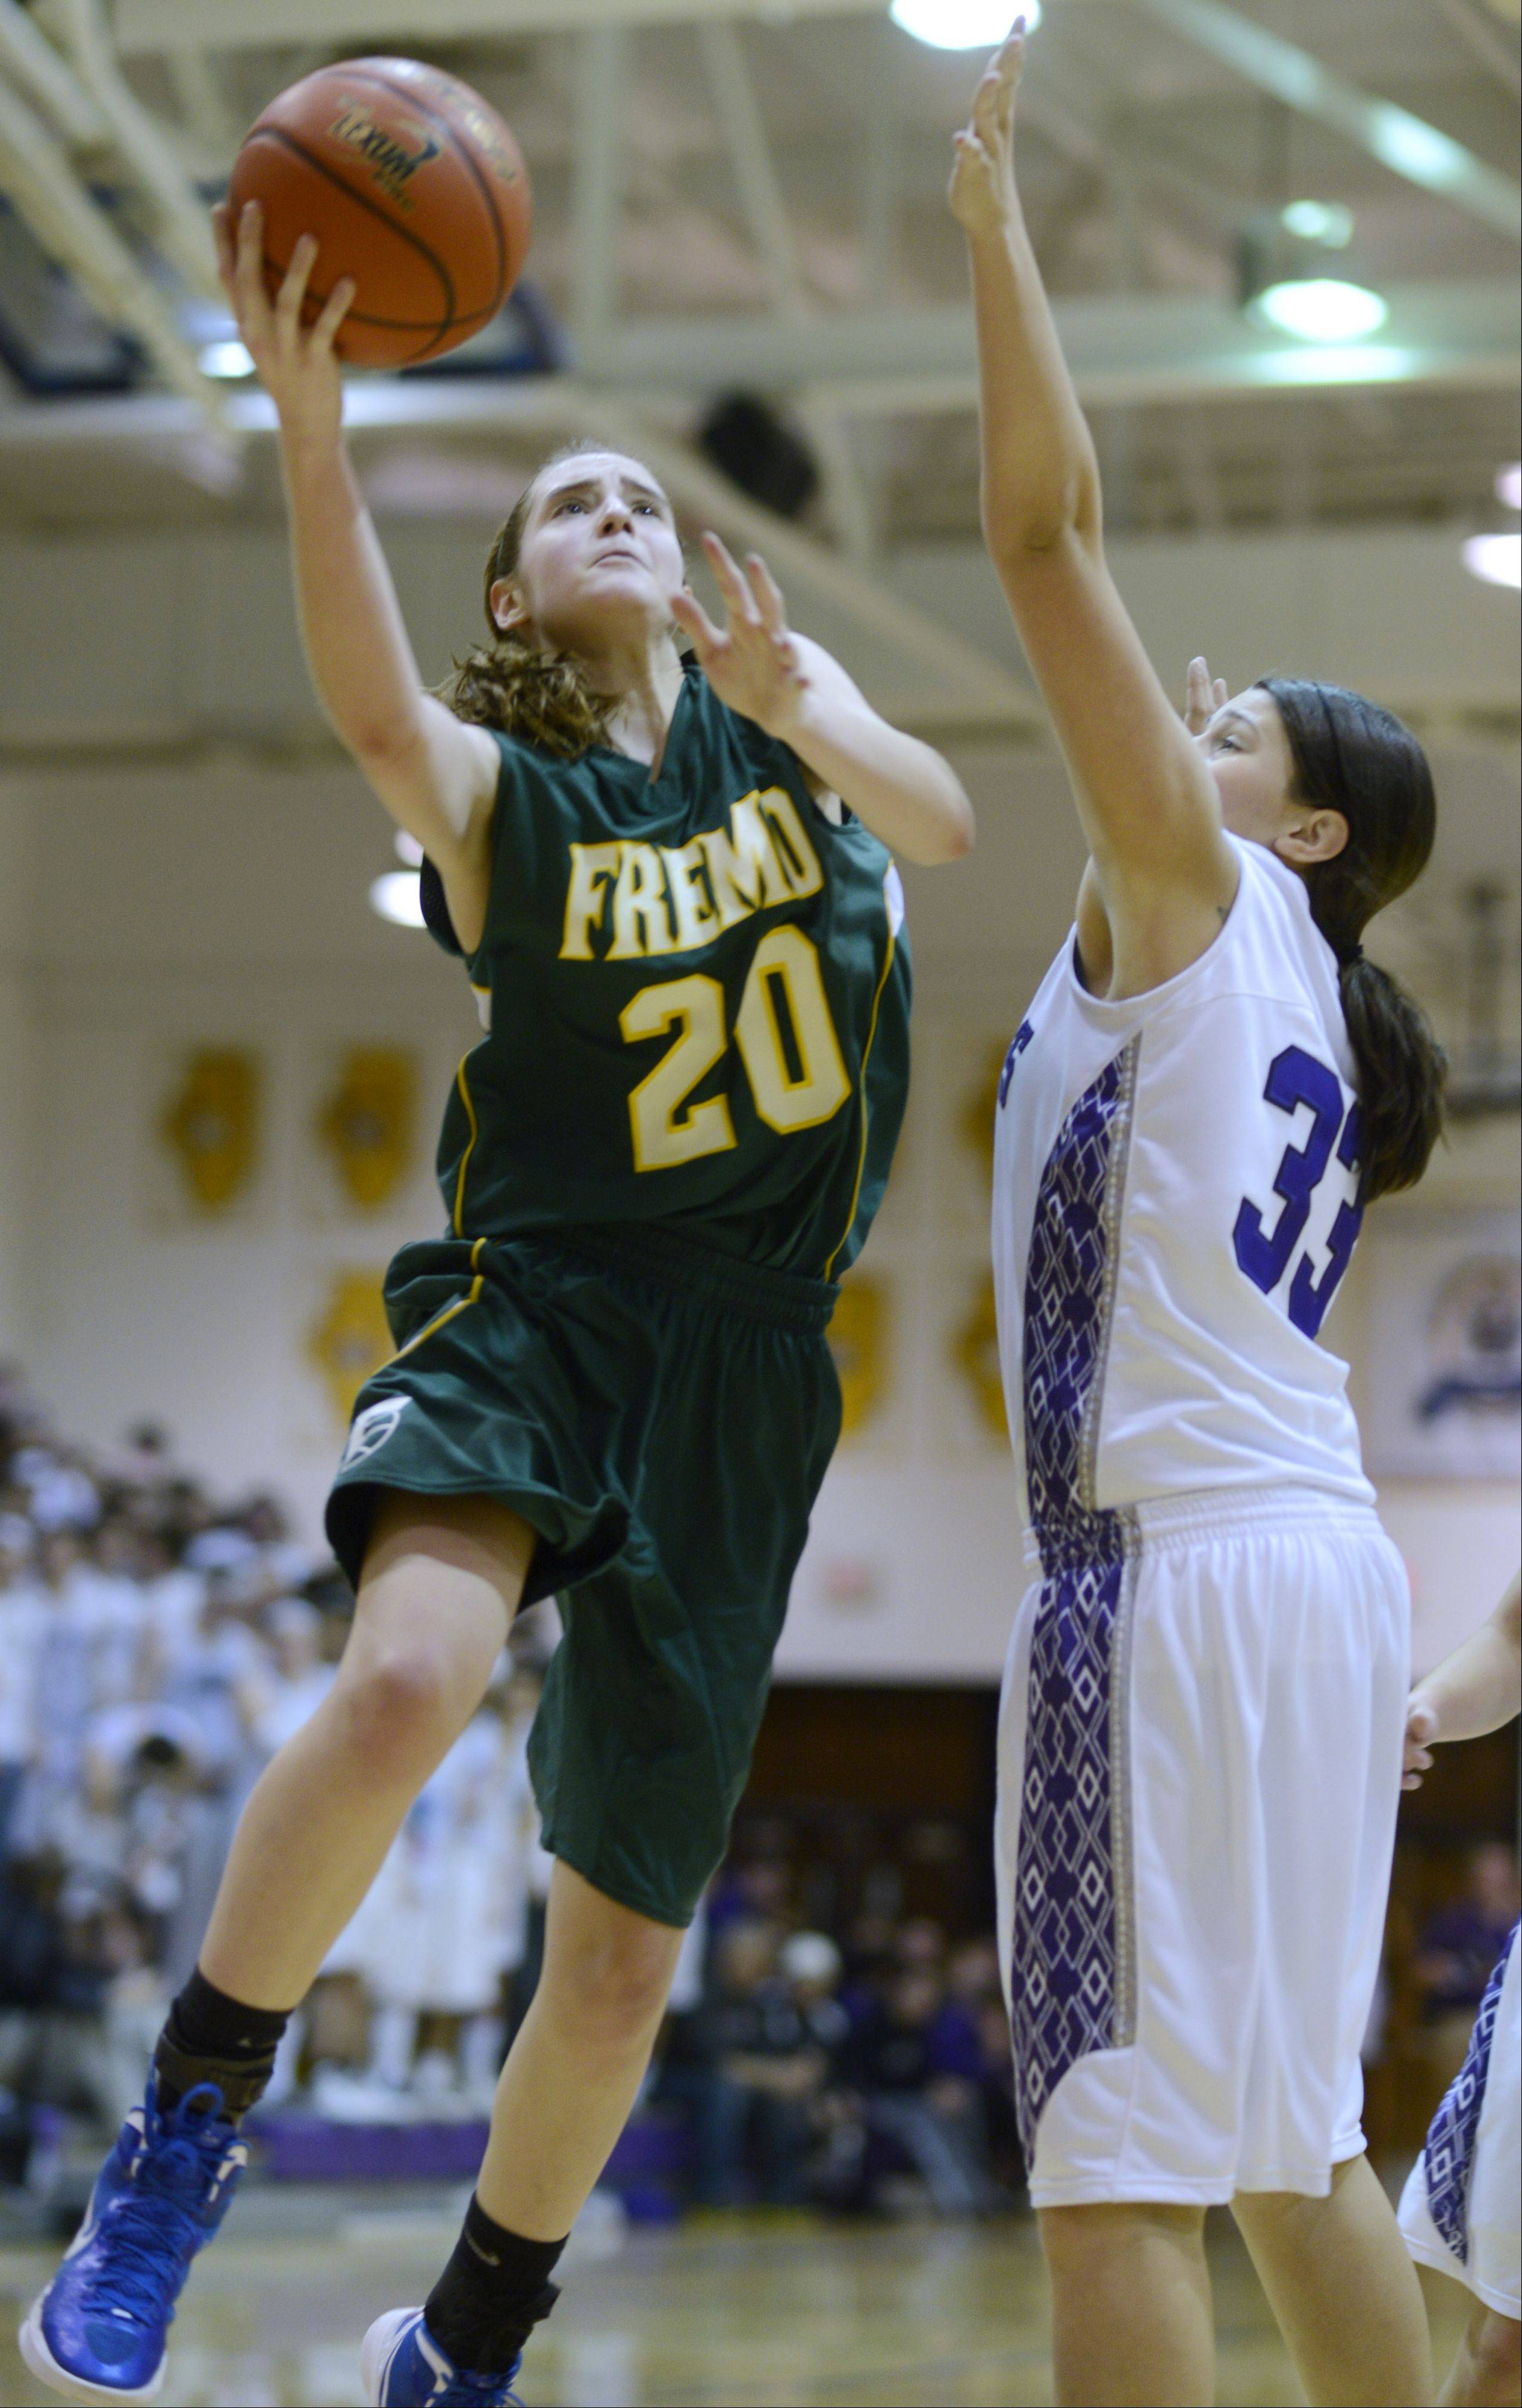 Fremd's Haley Gorecki drives for a layup with Ashley Montanez of Rolling Meadows defending during last season's Mid-Suburban League championship game.